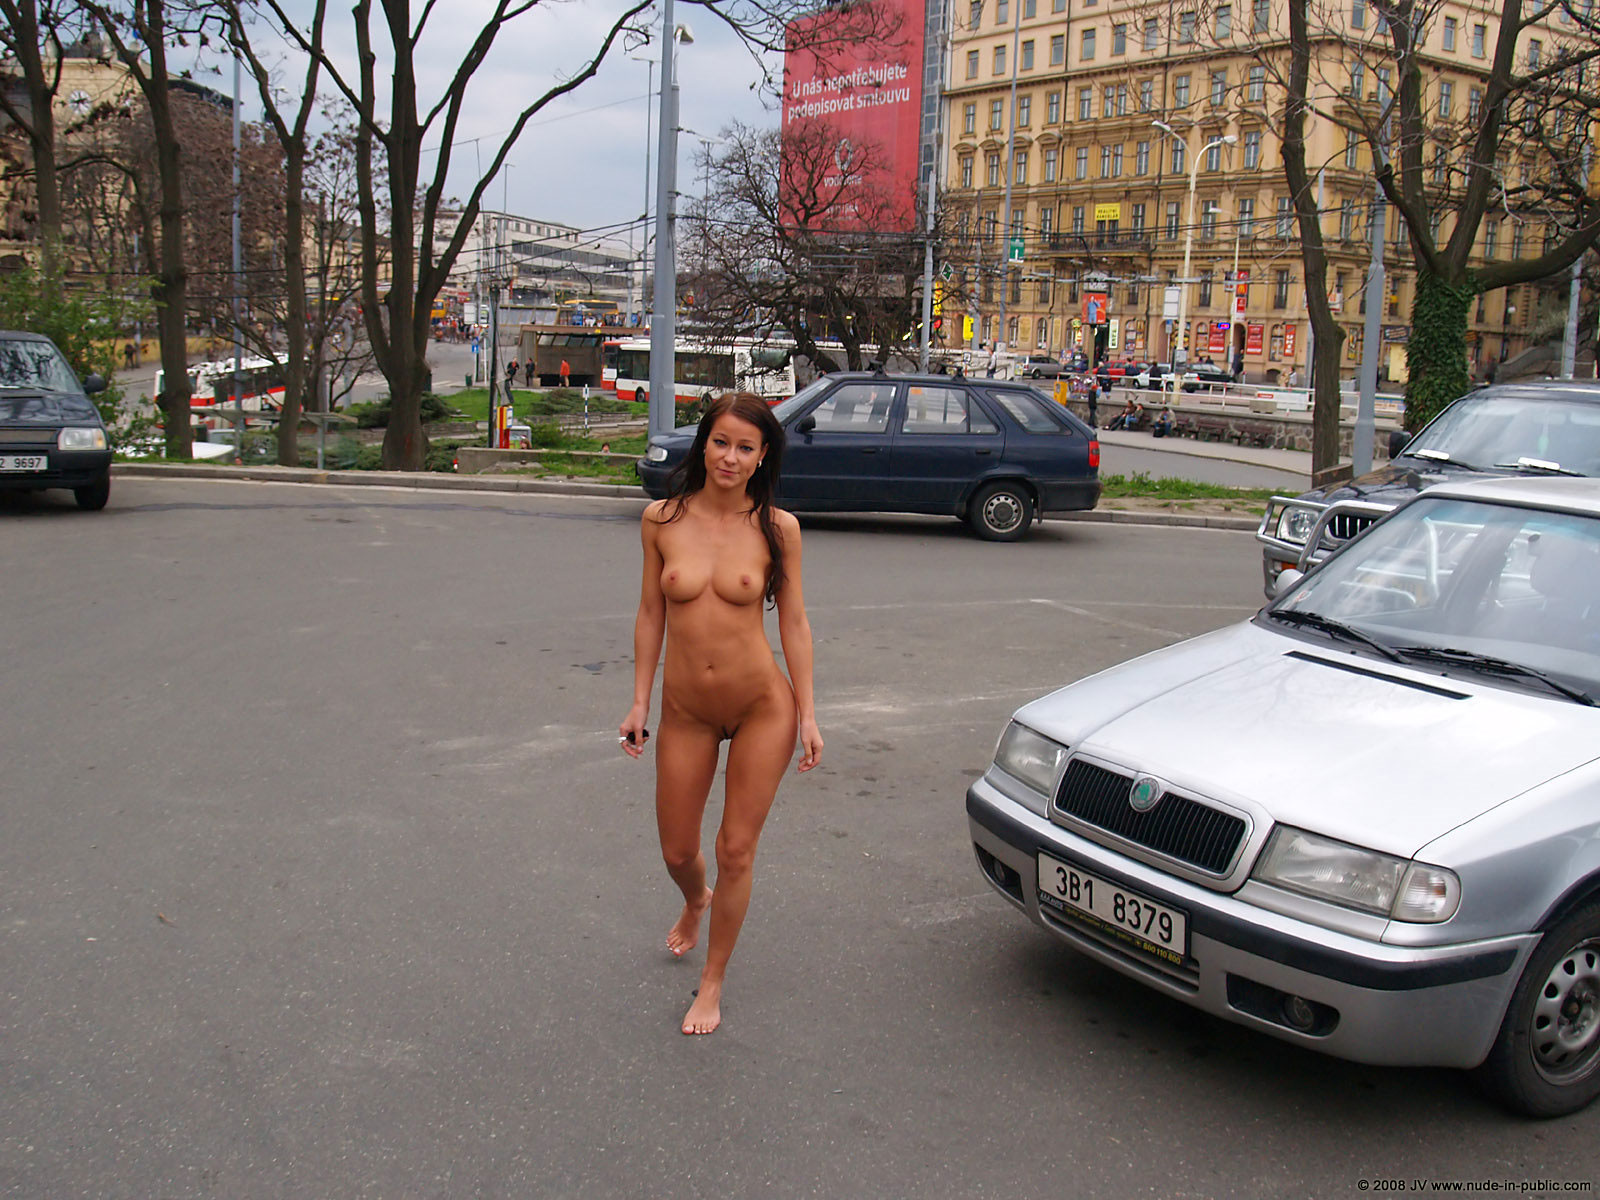 naked-girls-in-public-mix-vol5-63